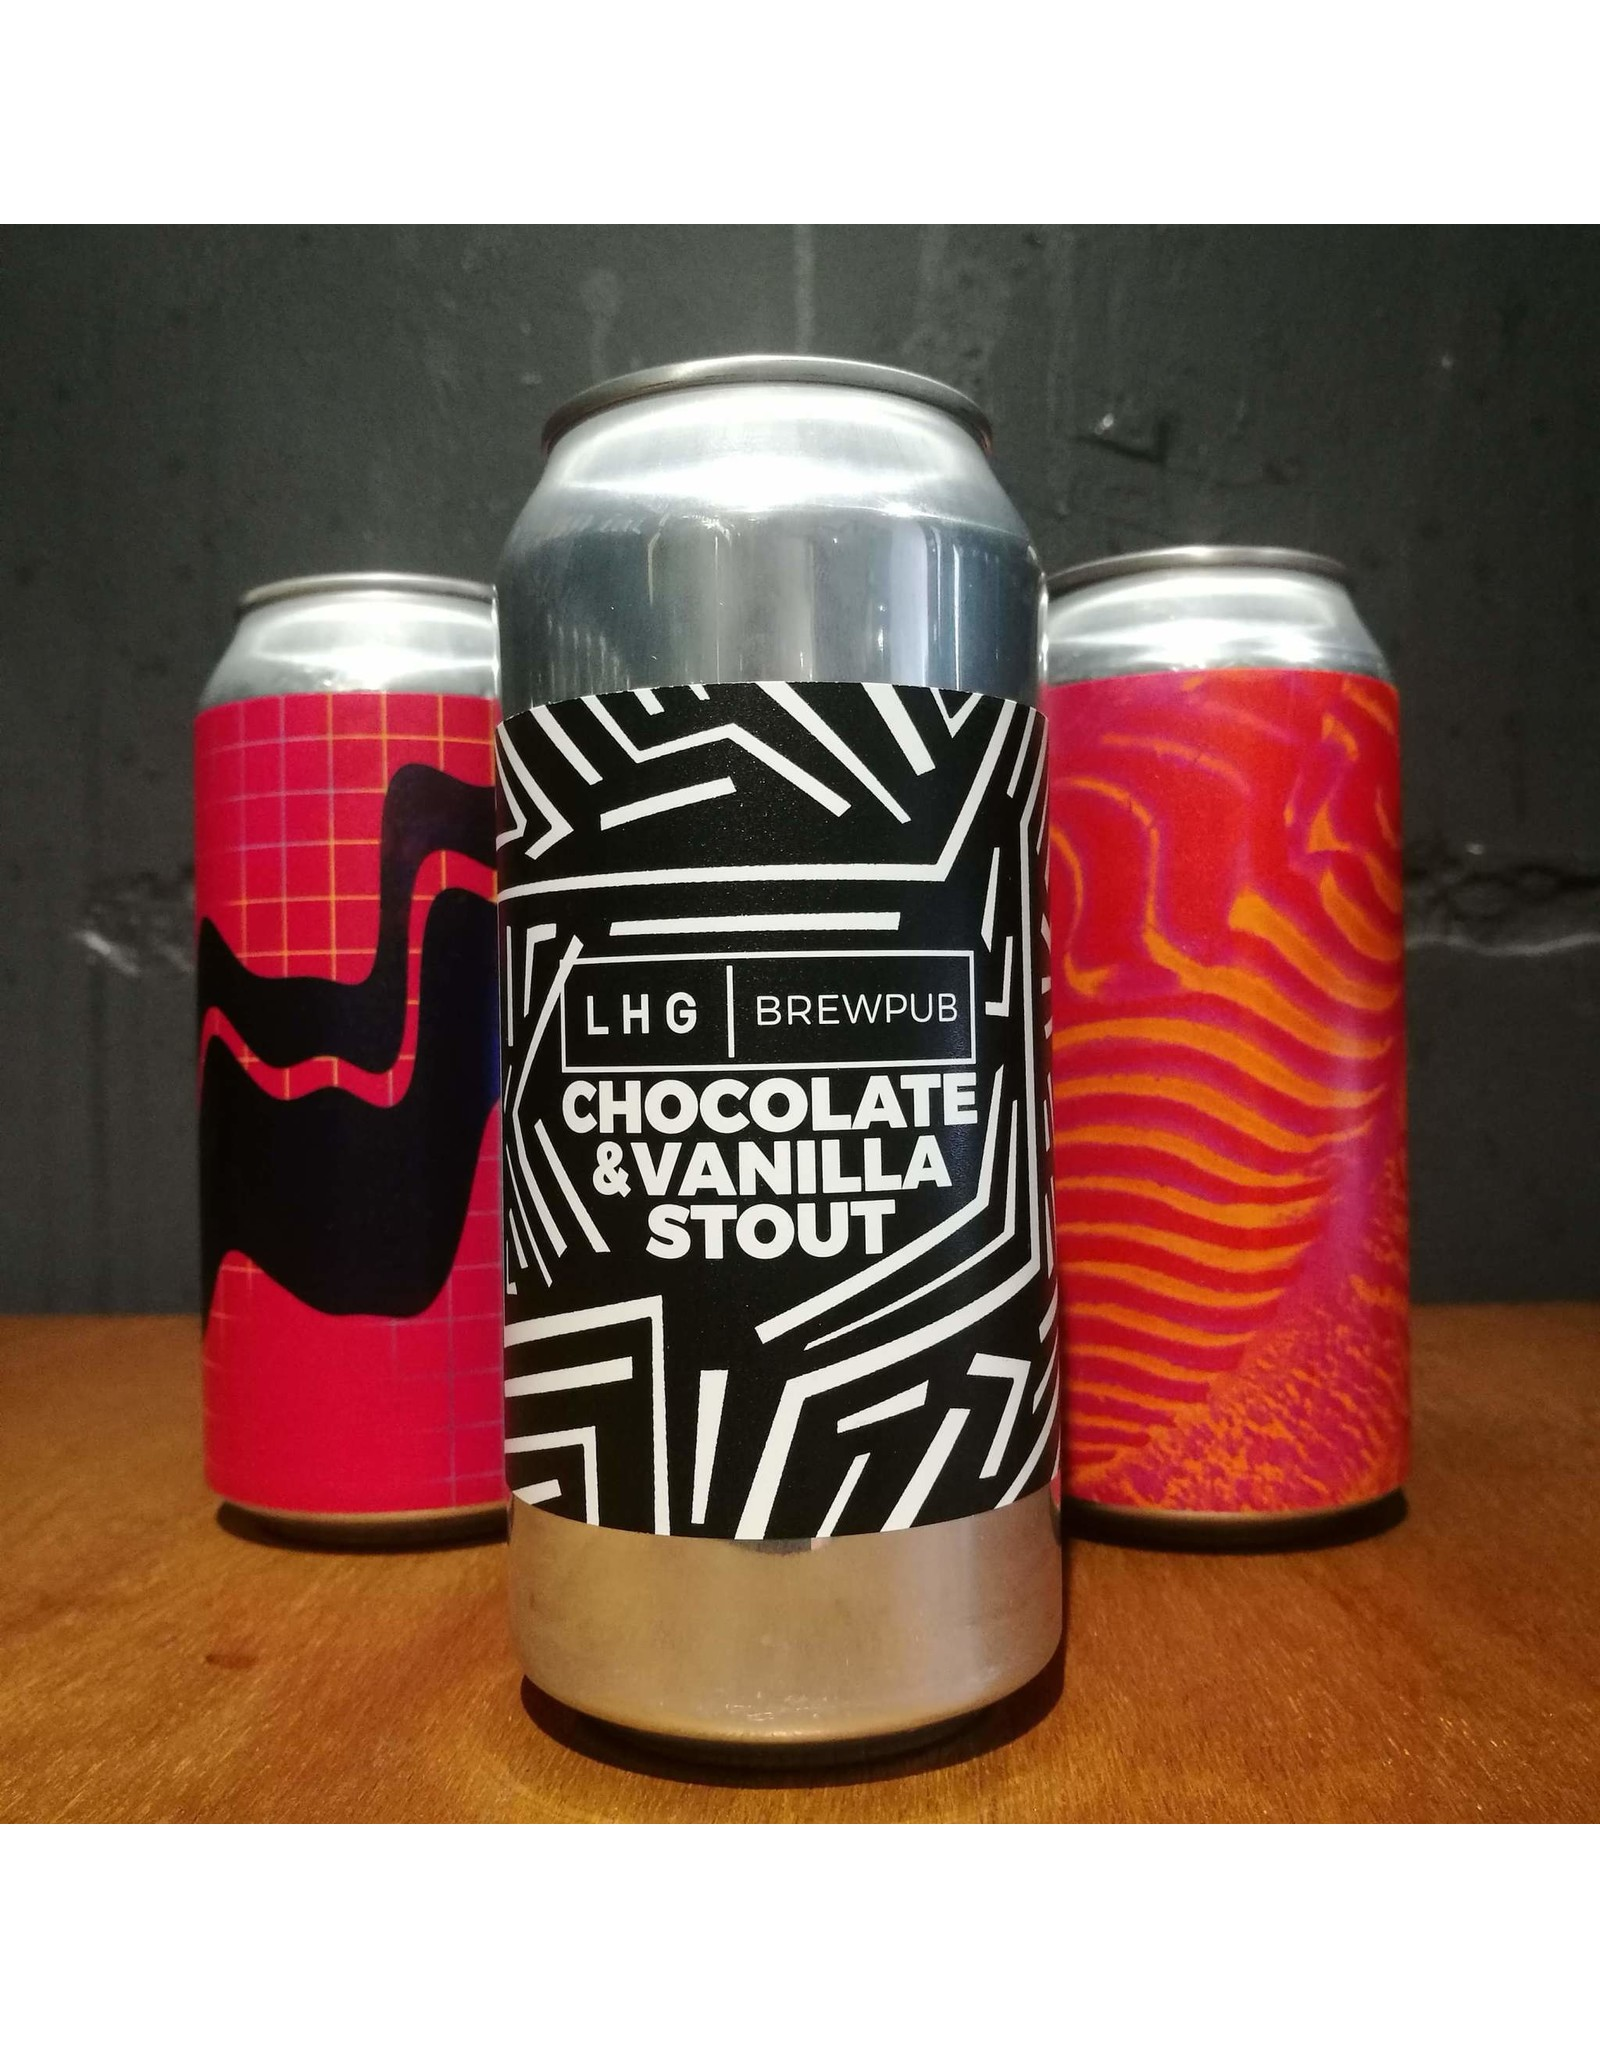 Left Handed Giant - LHG Brewpub Chocolate Vanilla Stout